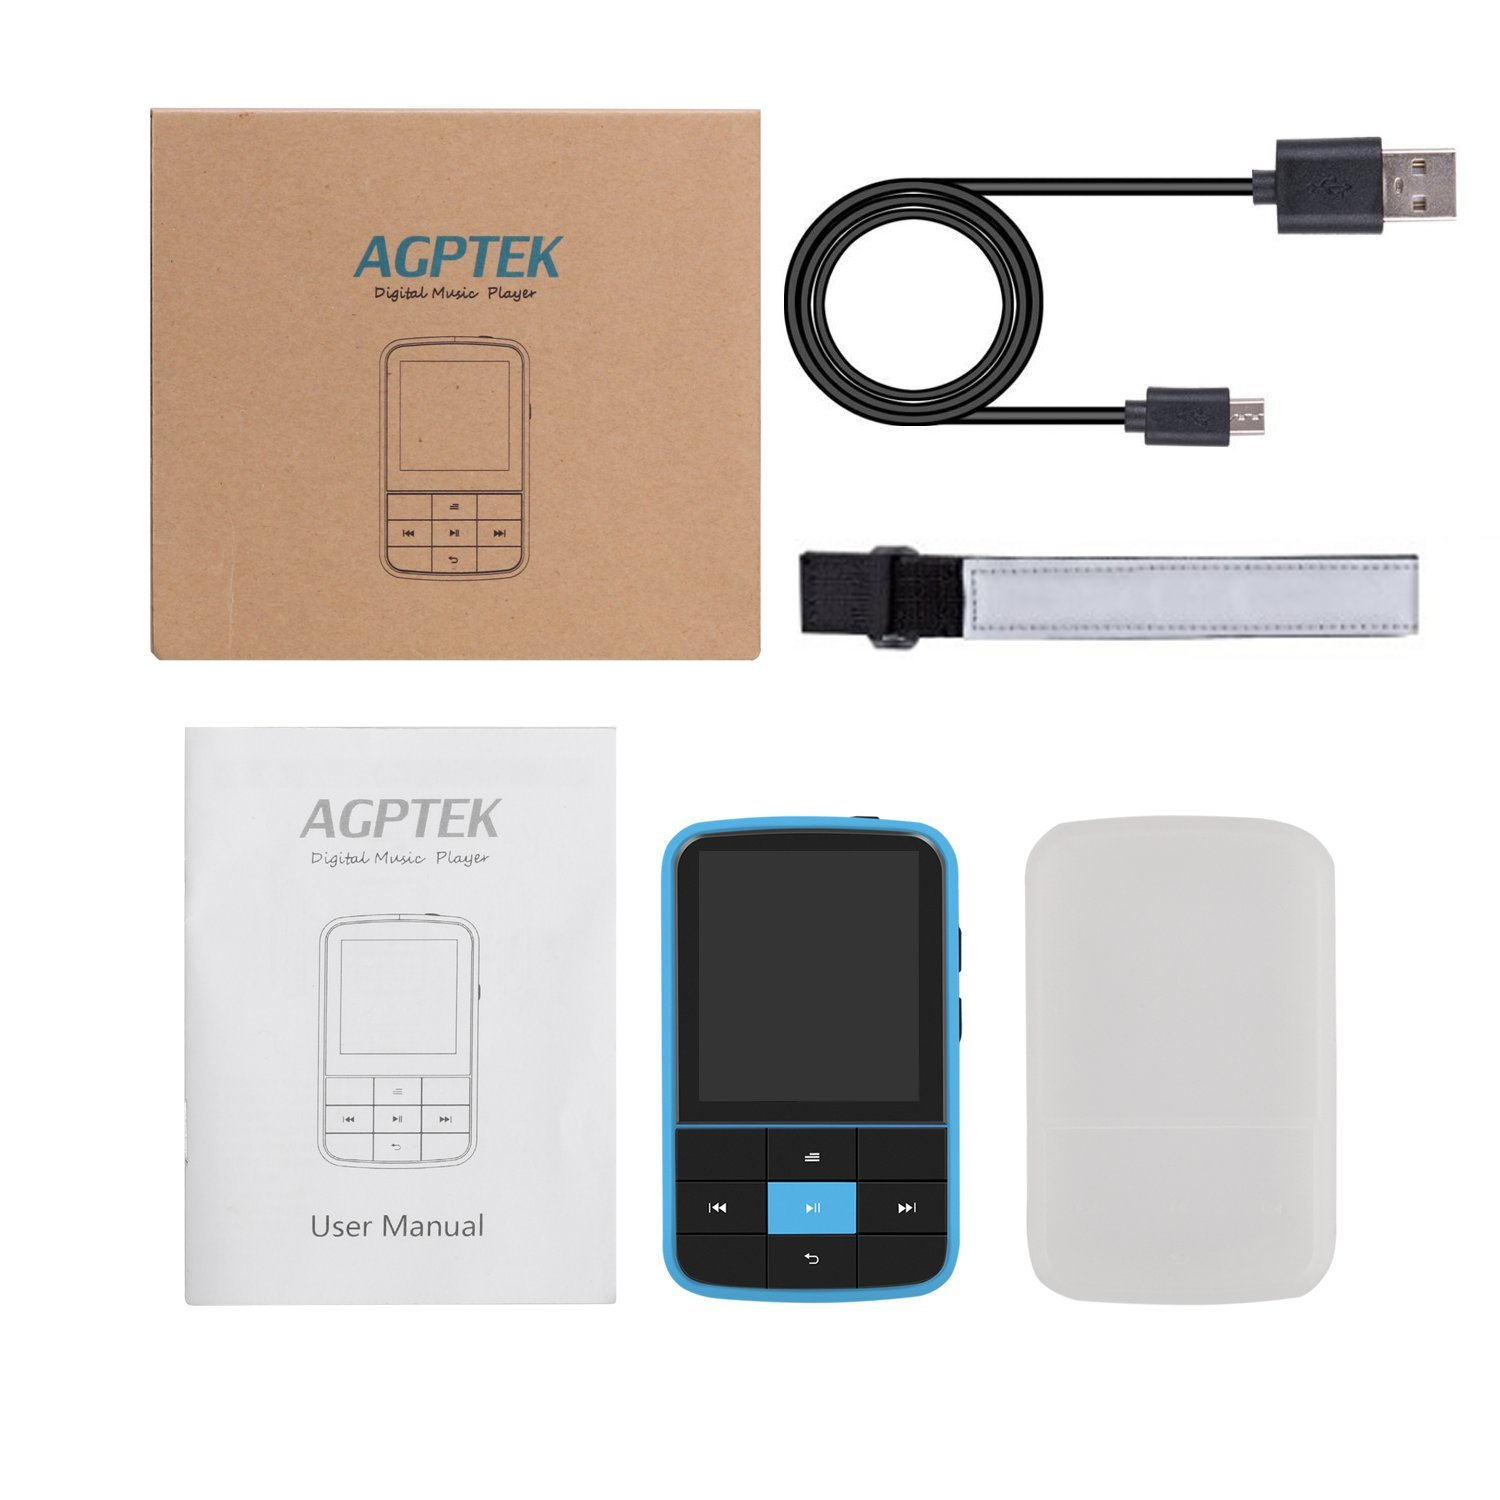 AGPTEK 16GB Clip MP3 Player with Bluetooth 4.0, Wearable Portable Music Player with Sweatproof Silicone Case and Sport Armband Expandable Up to 128GB, Blue(G15) by AGPTEK (Image #7)